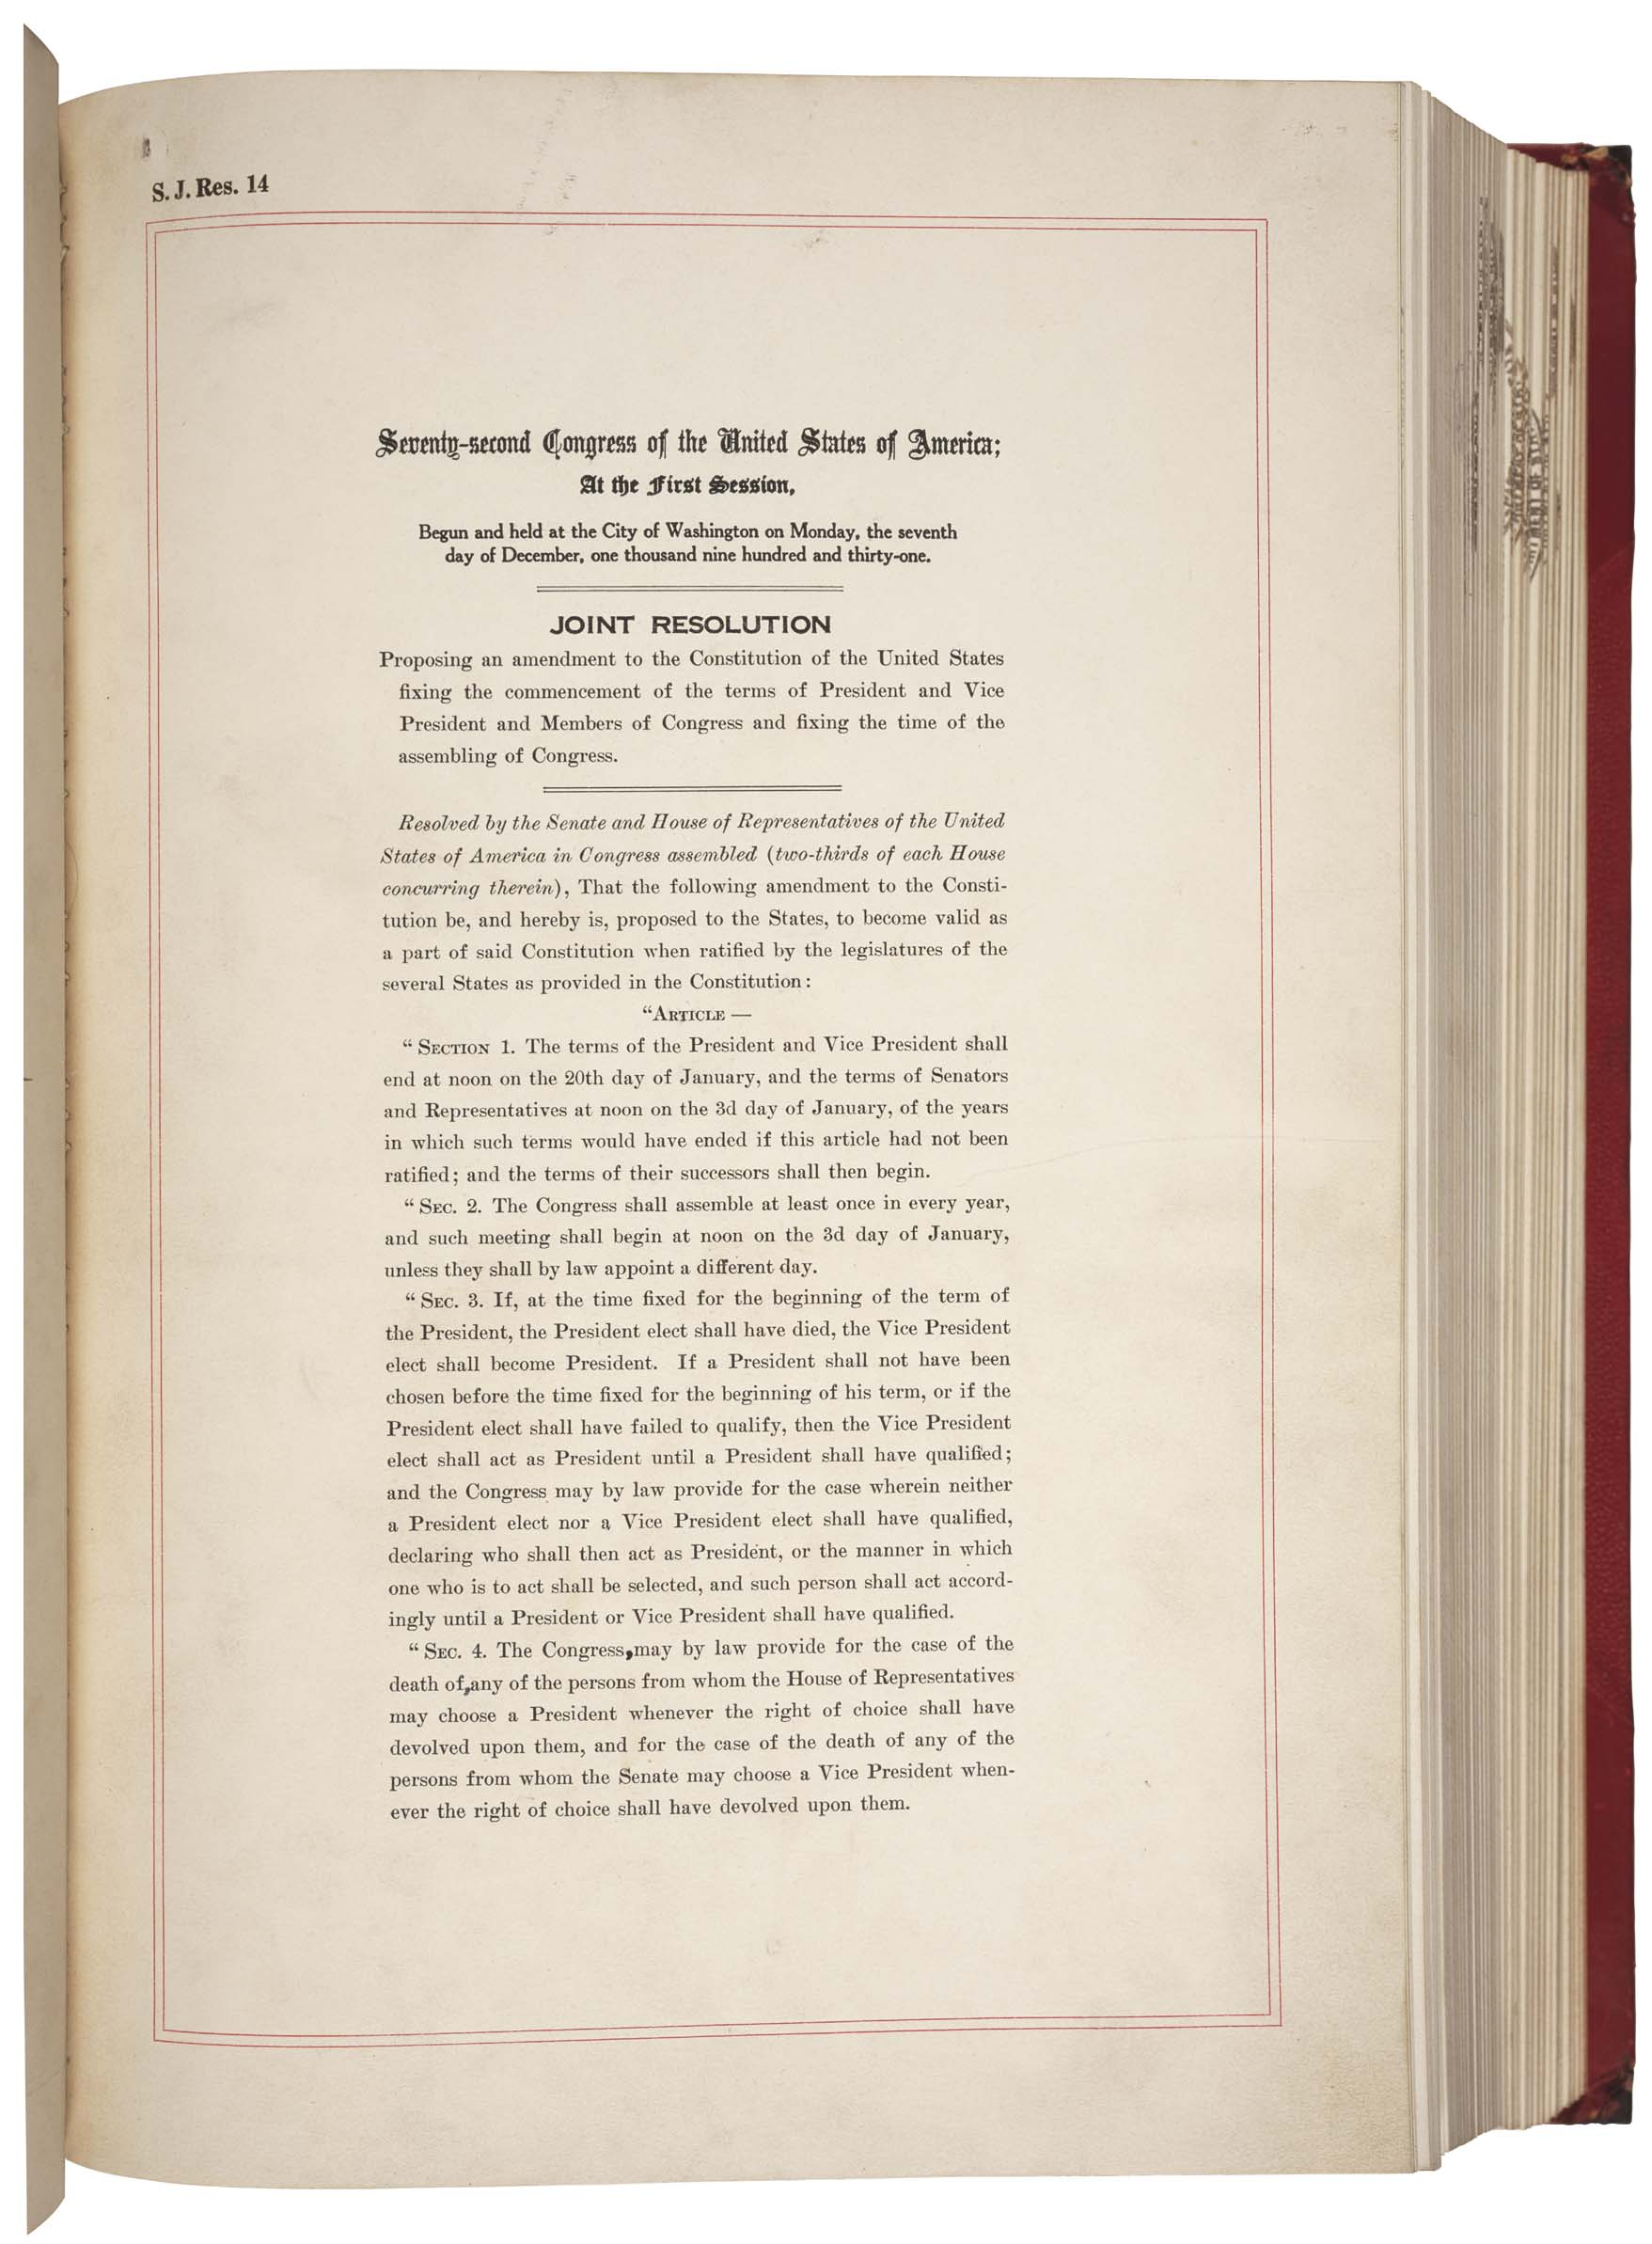 20th Amendment to the US Constitution - Page 1 of 2